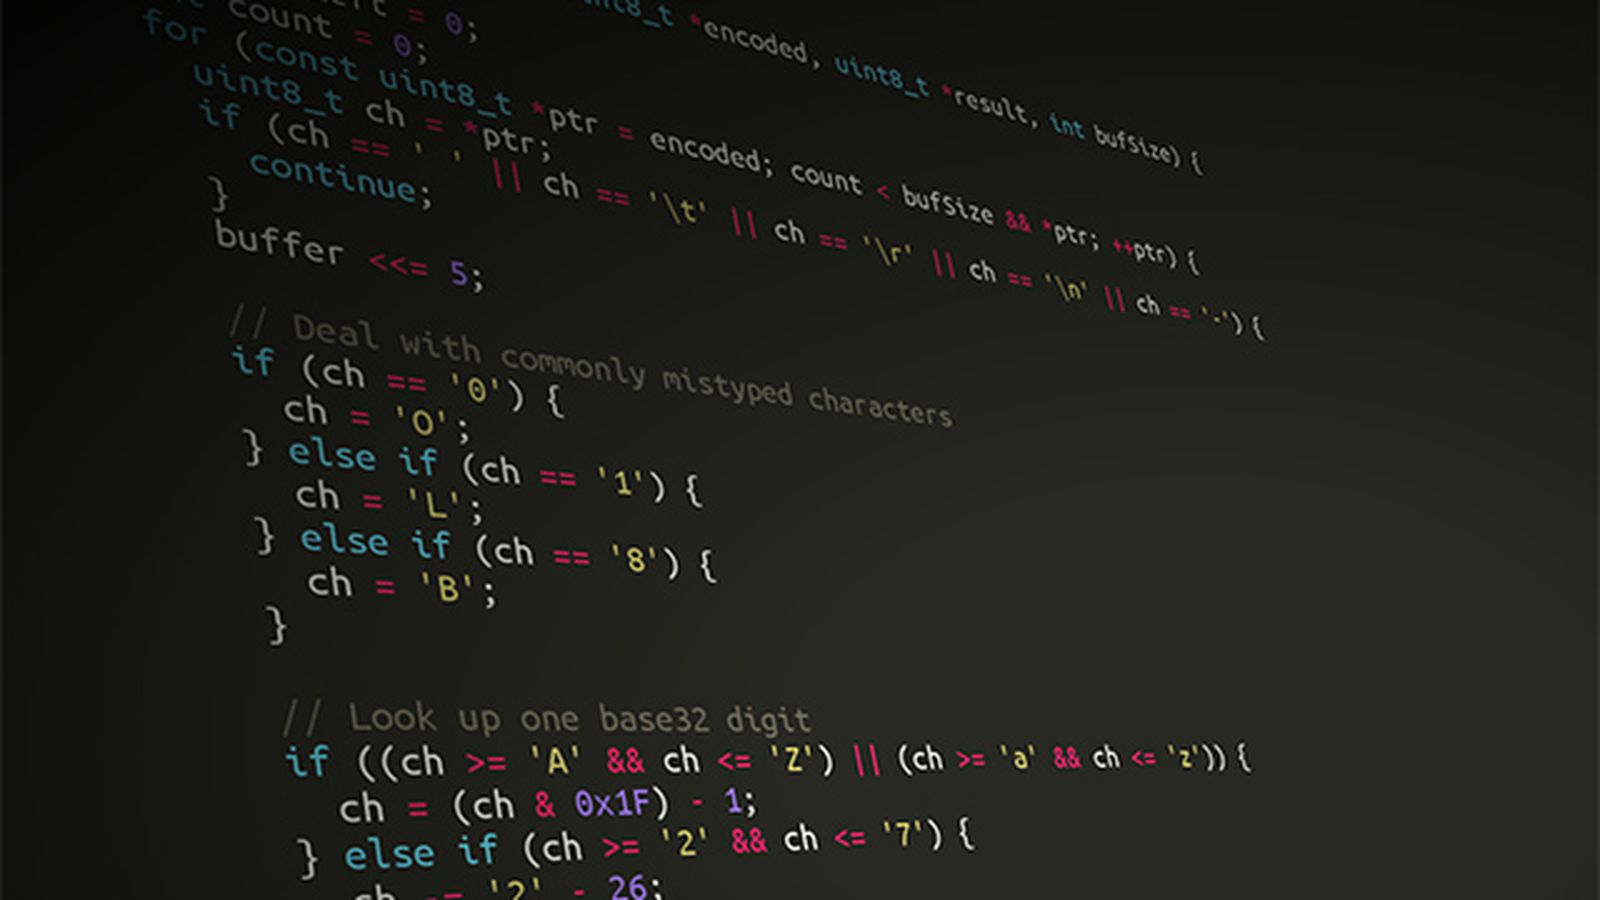 Programmer Quotes Wallpaper Hd Nissan App Developer Busted For Copying Code From Stack